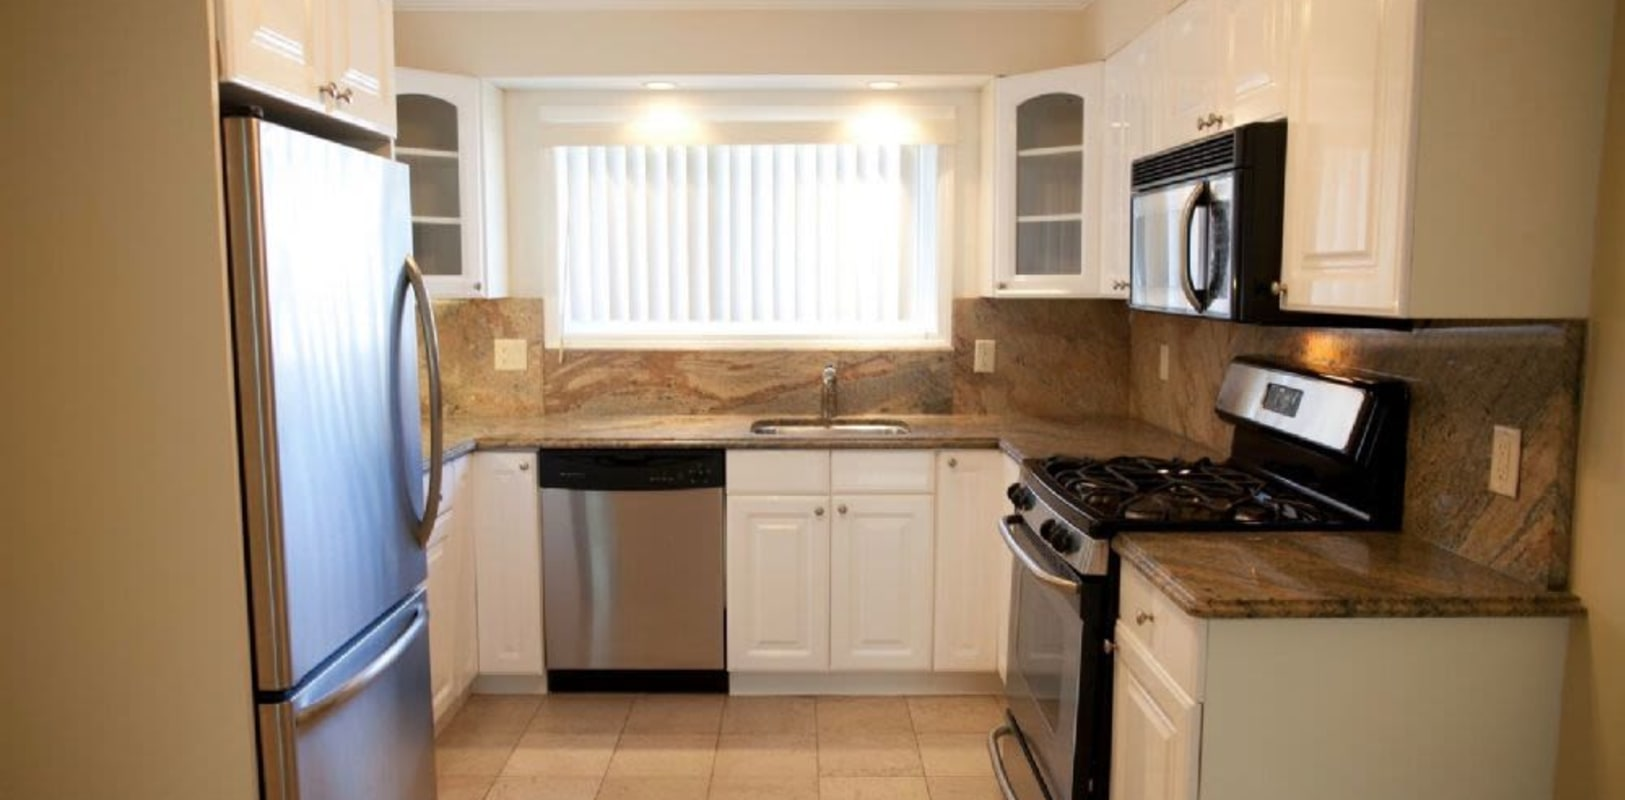 Kitchen with stainless steel appliances at Cottage Place Apartments in Long Branch, New Jersey